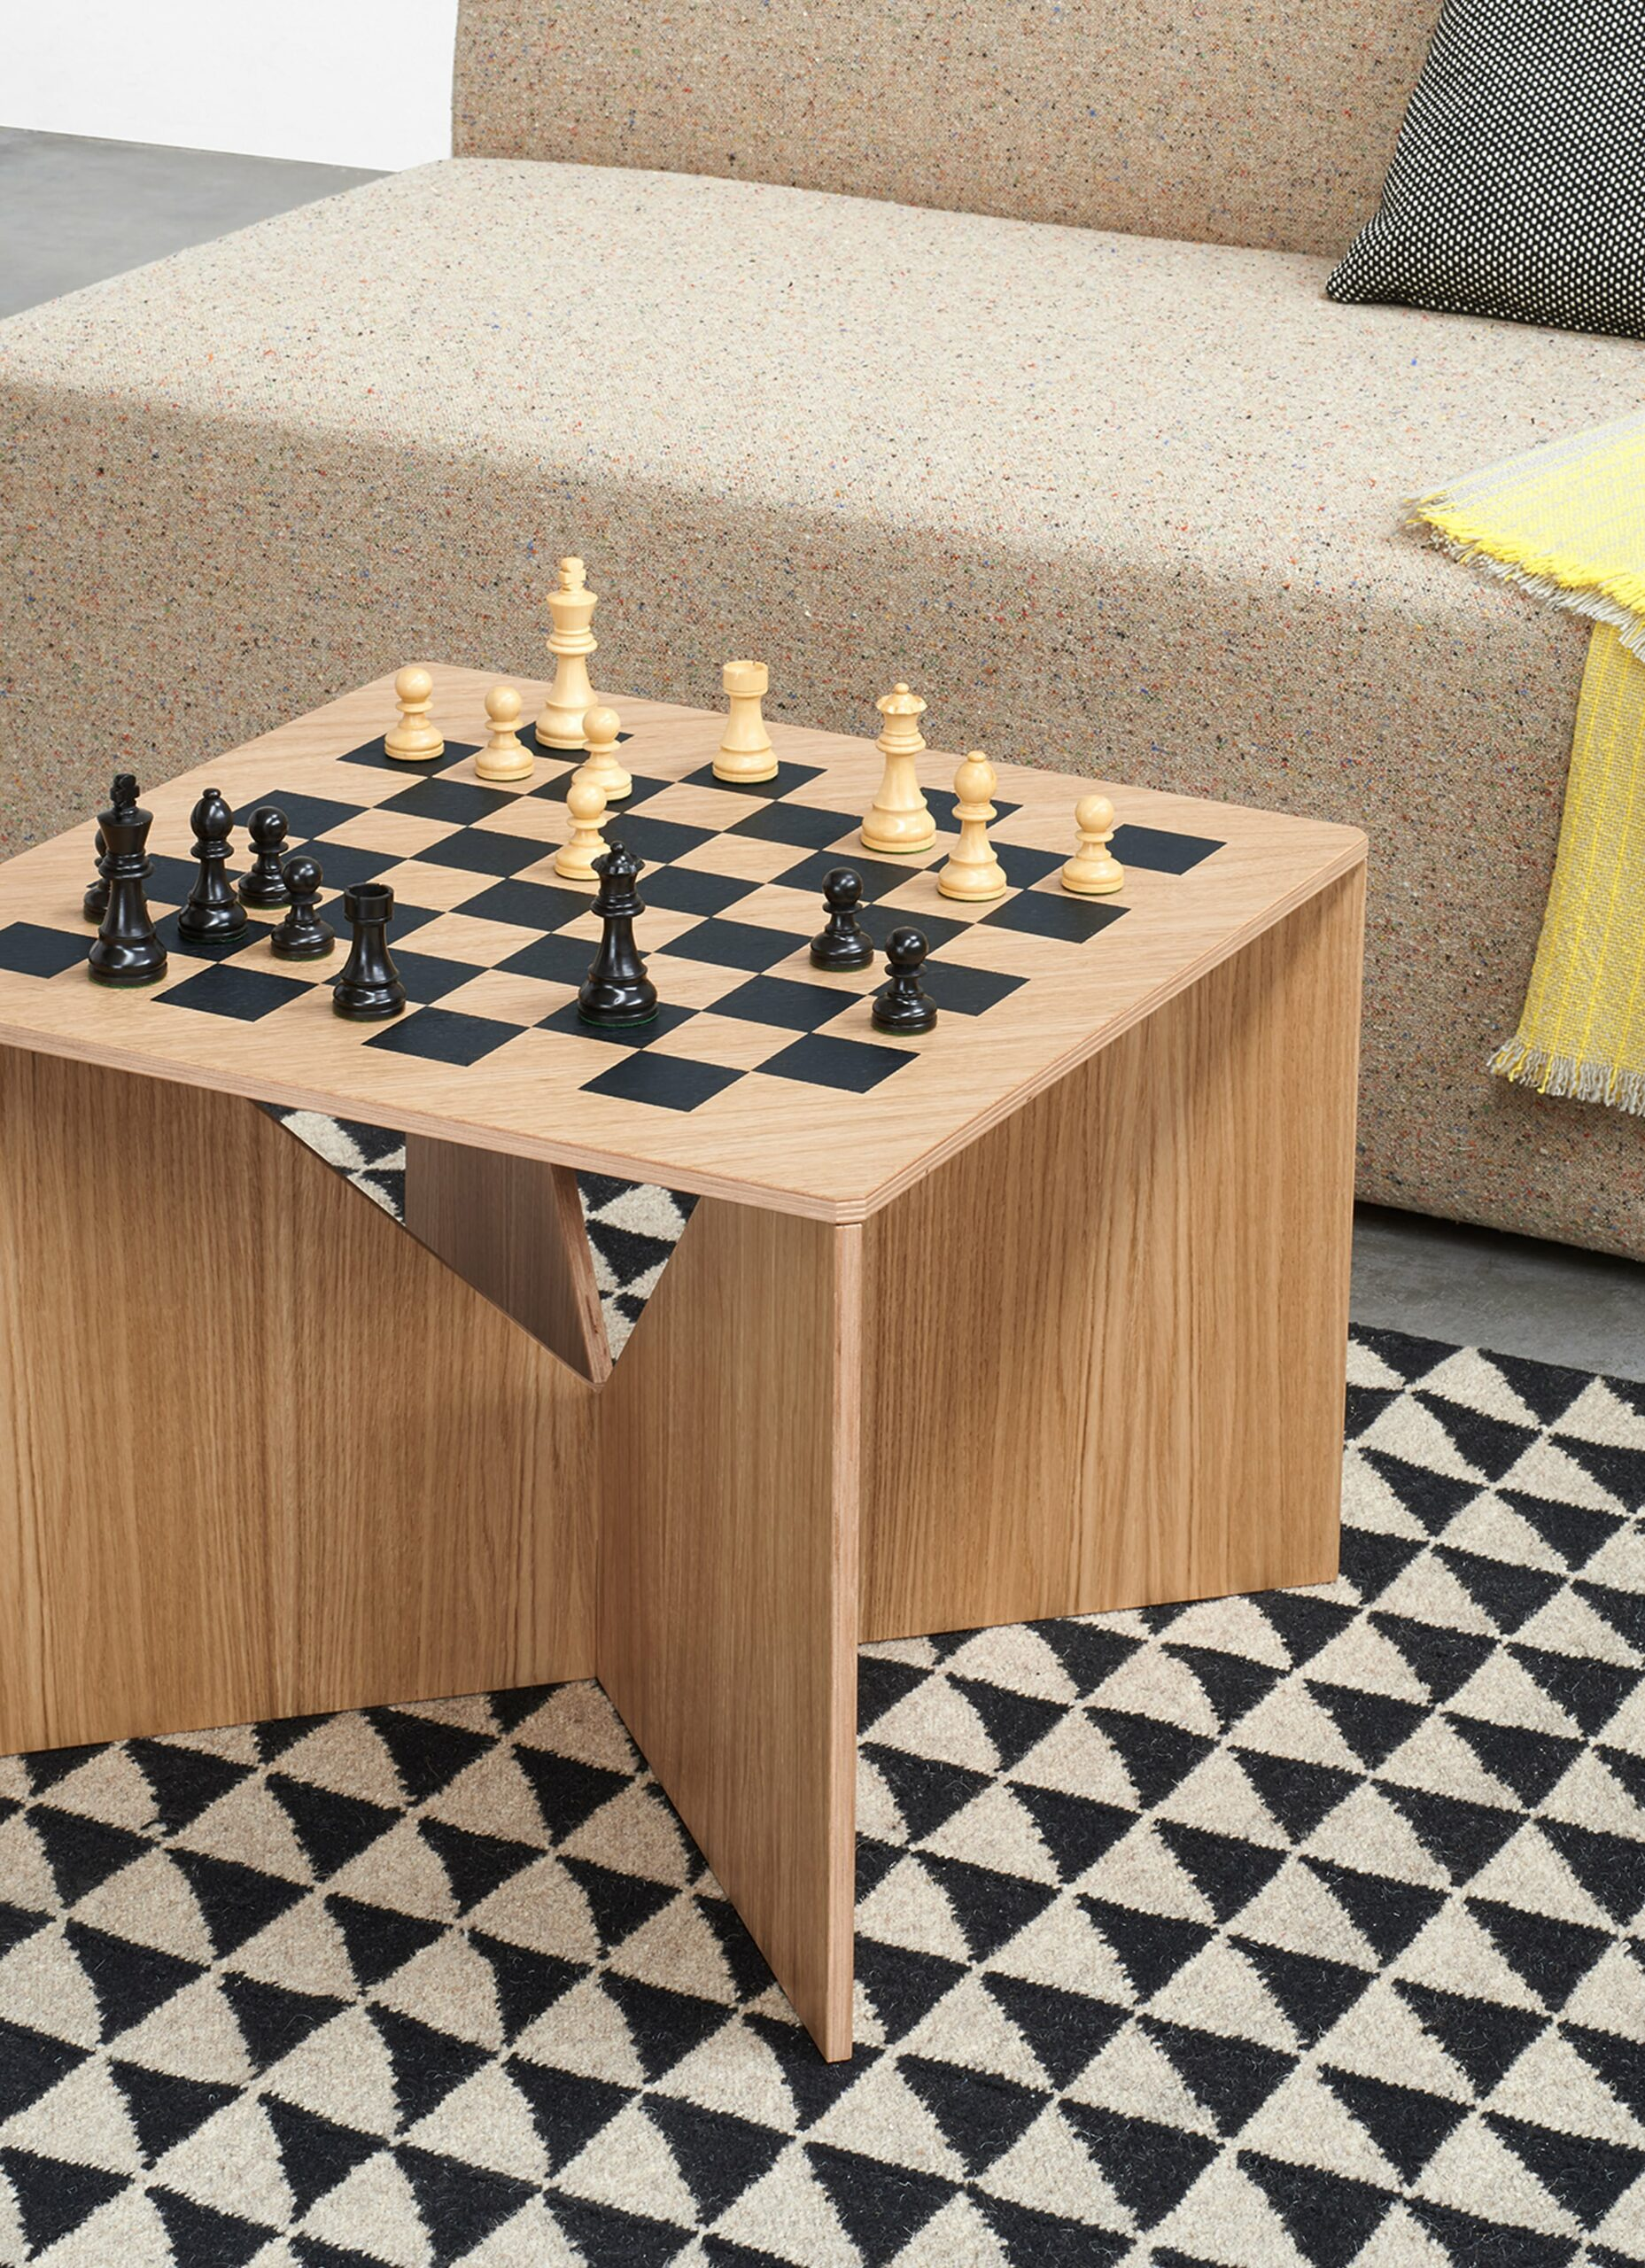 e15 - Ferdinand Kramer - Calvert Chess - Coffee table